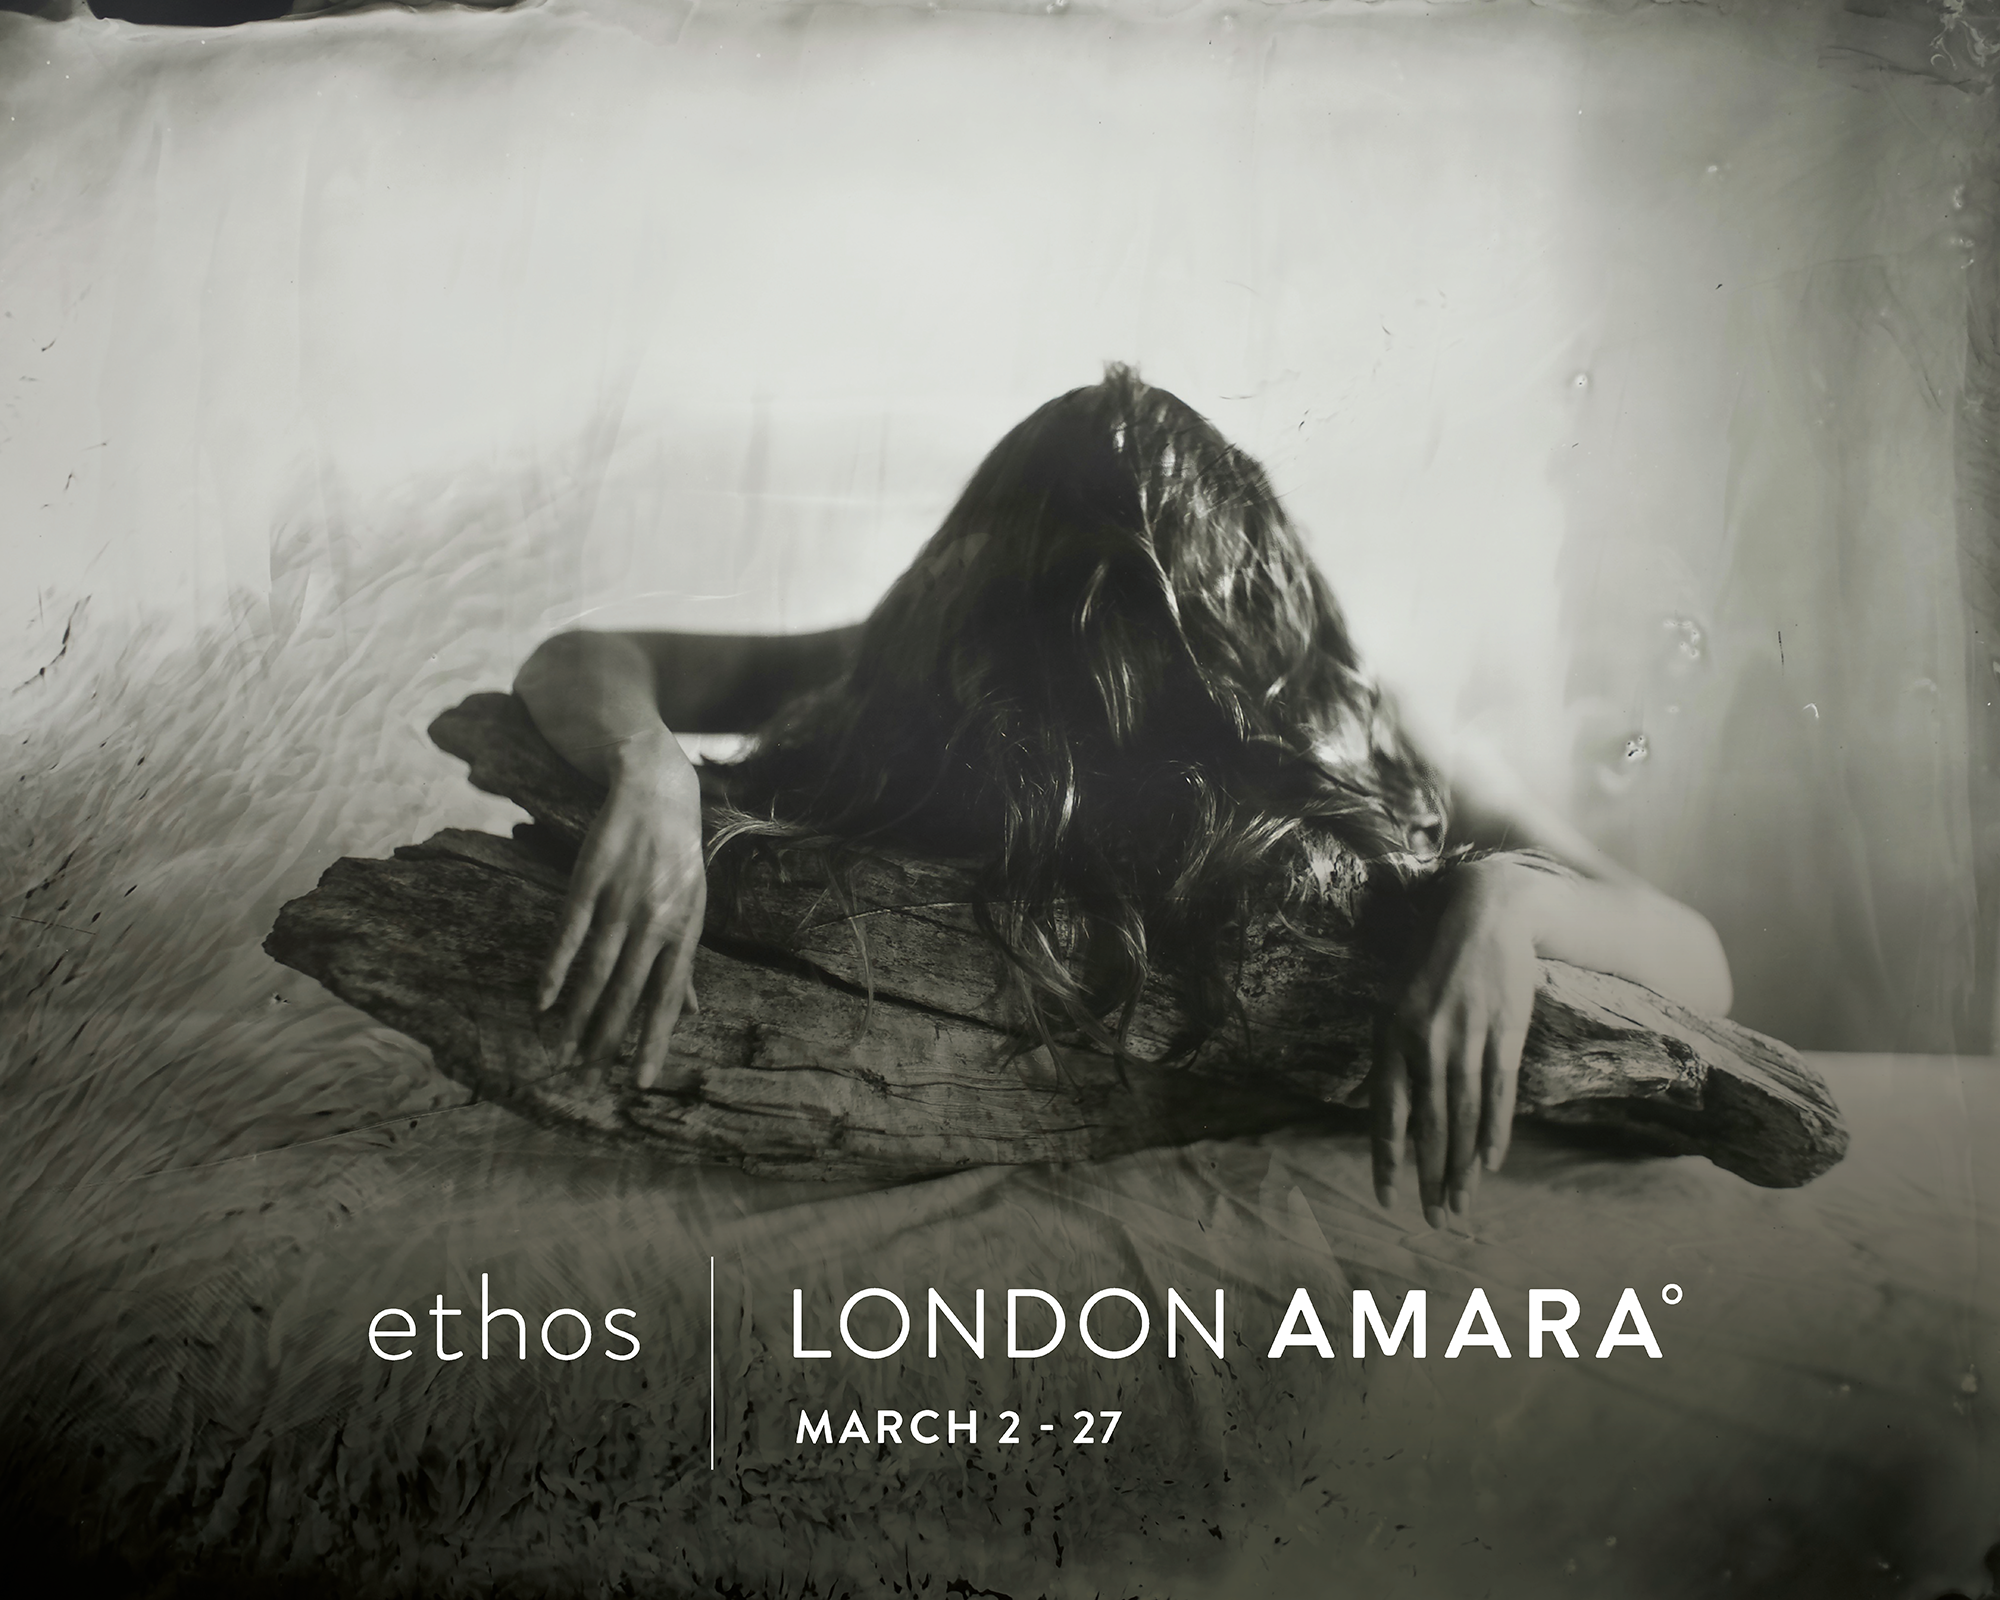 LONDON_ExhibitionBanner_120x96_LowRes.png